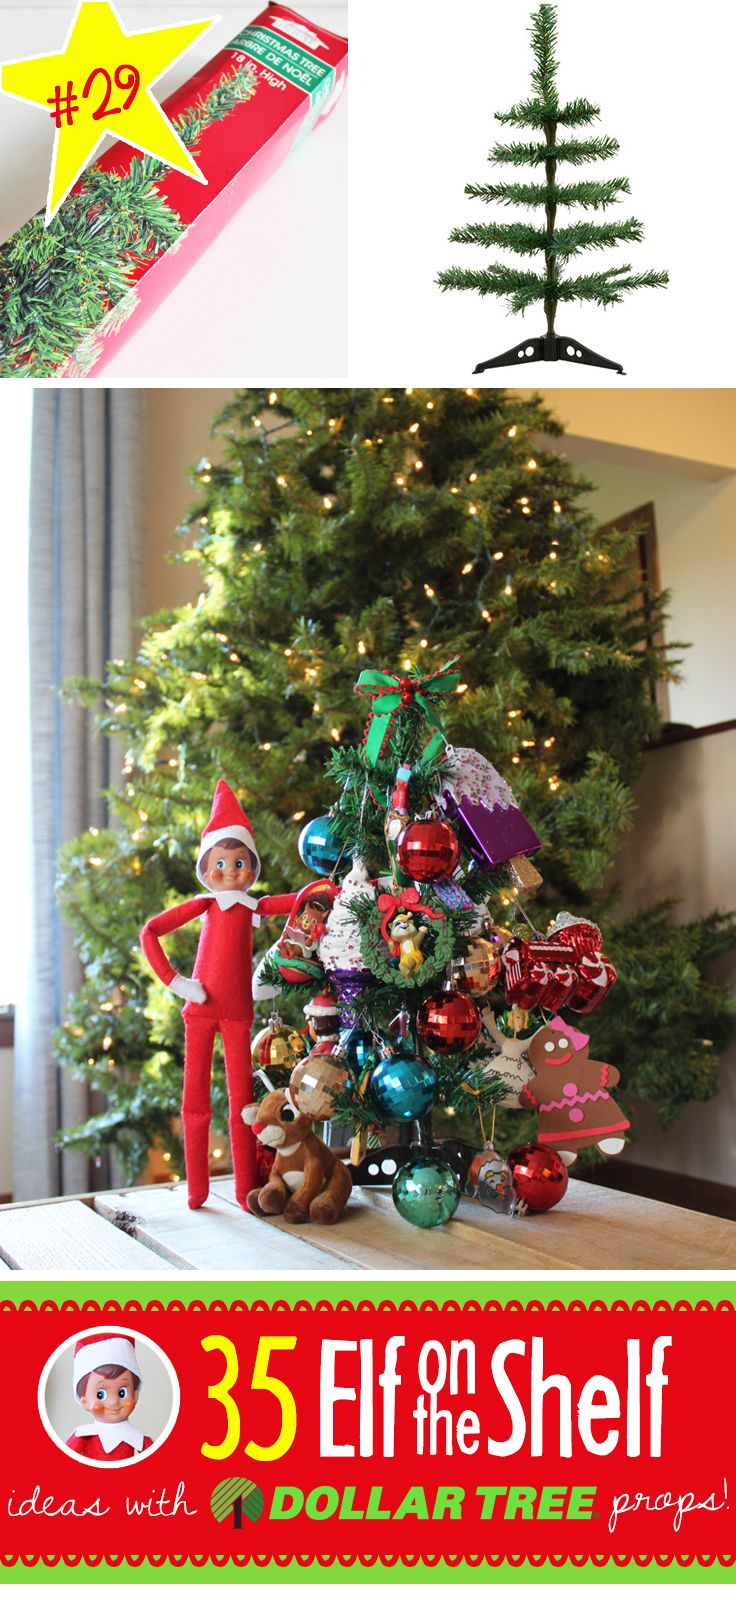 Steals ornaments for the tree or makes ornaments for their tree.